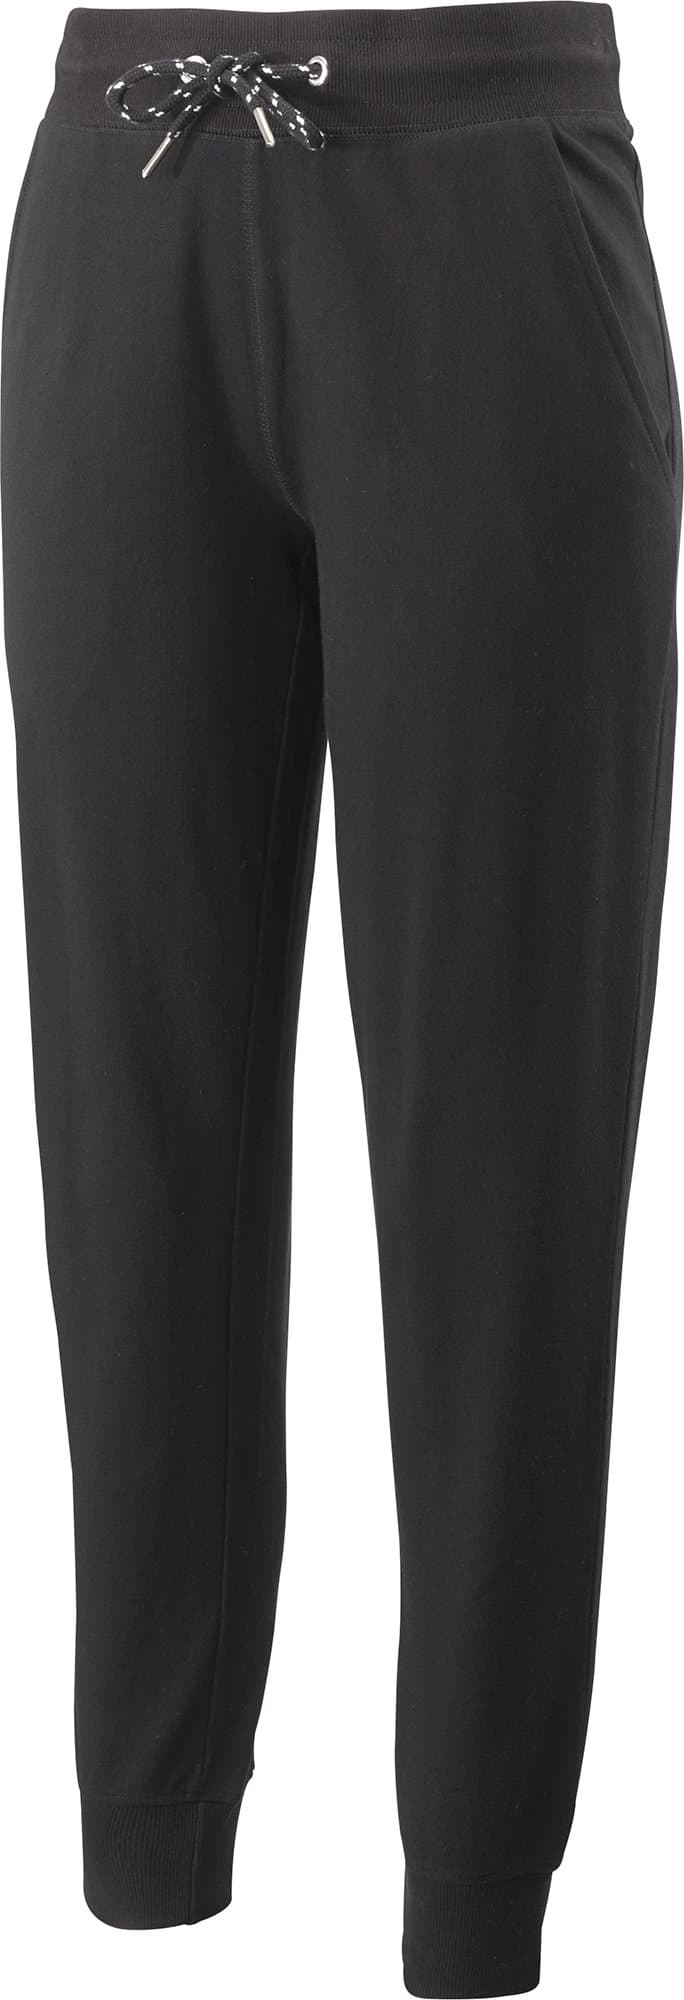 Extend SWEATPANT Damen-Hose